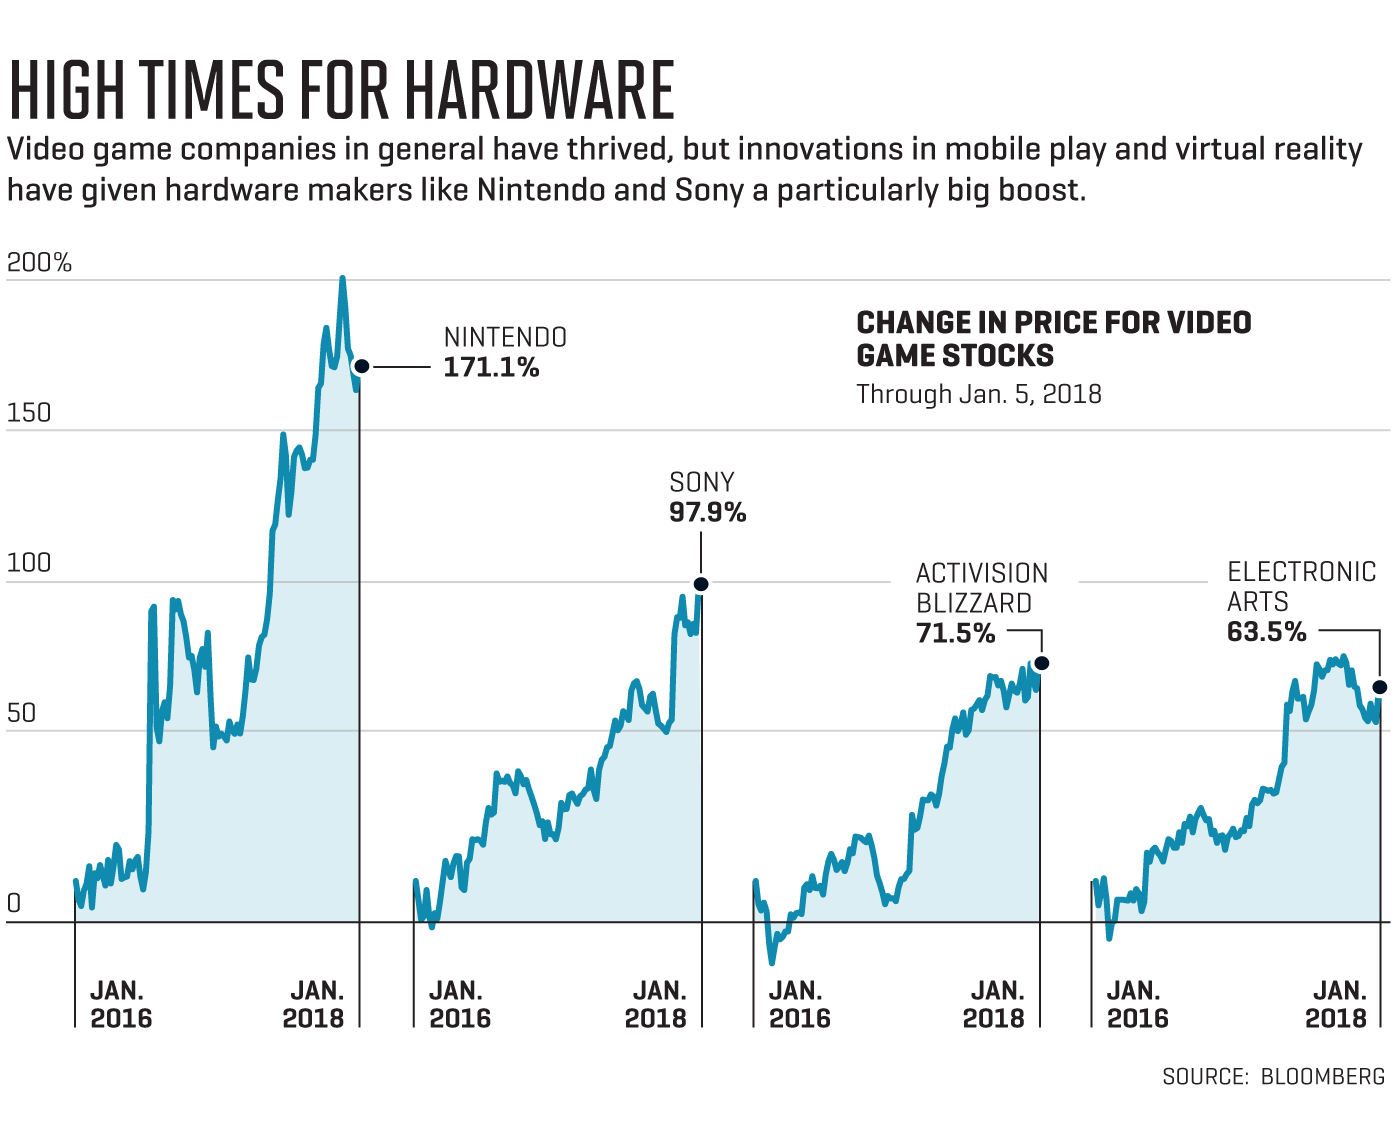 Best Stocks to Buy 2018: Switch Lifts Nintendo, while Sony and EA